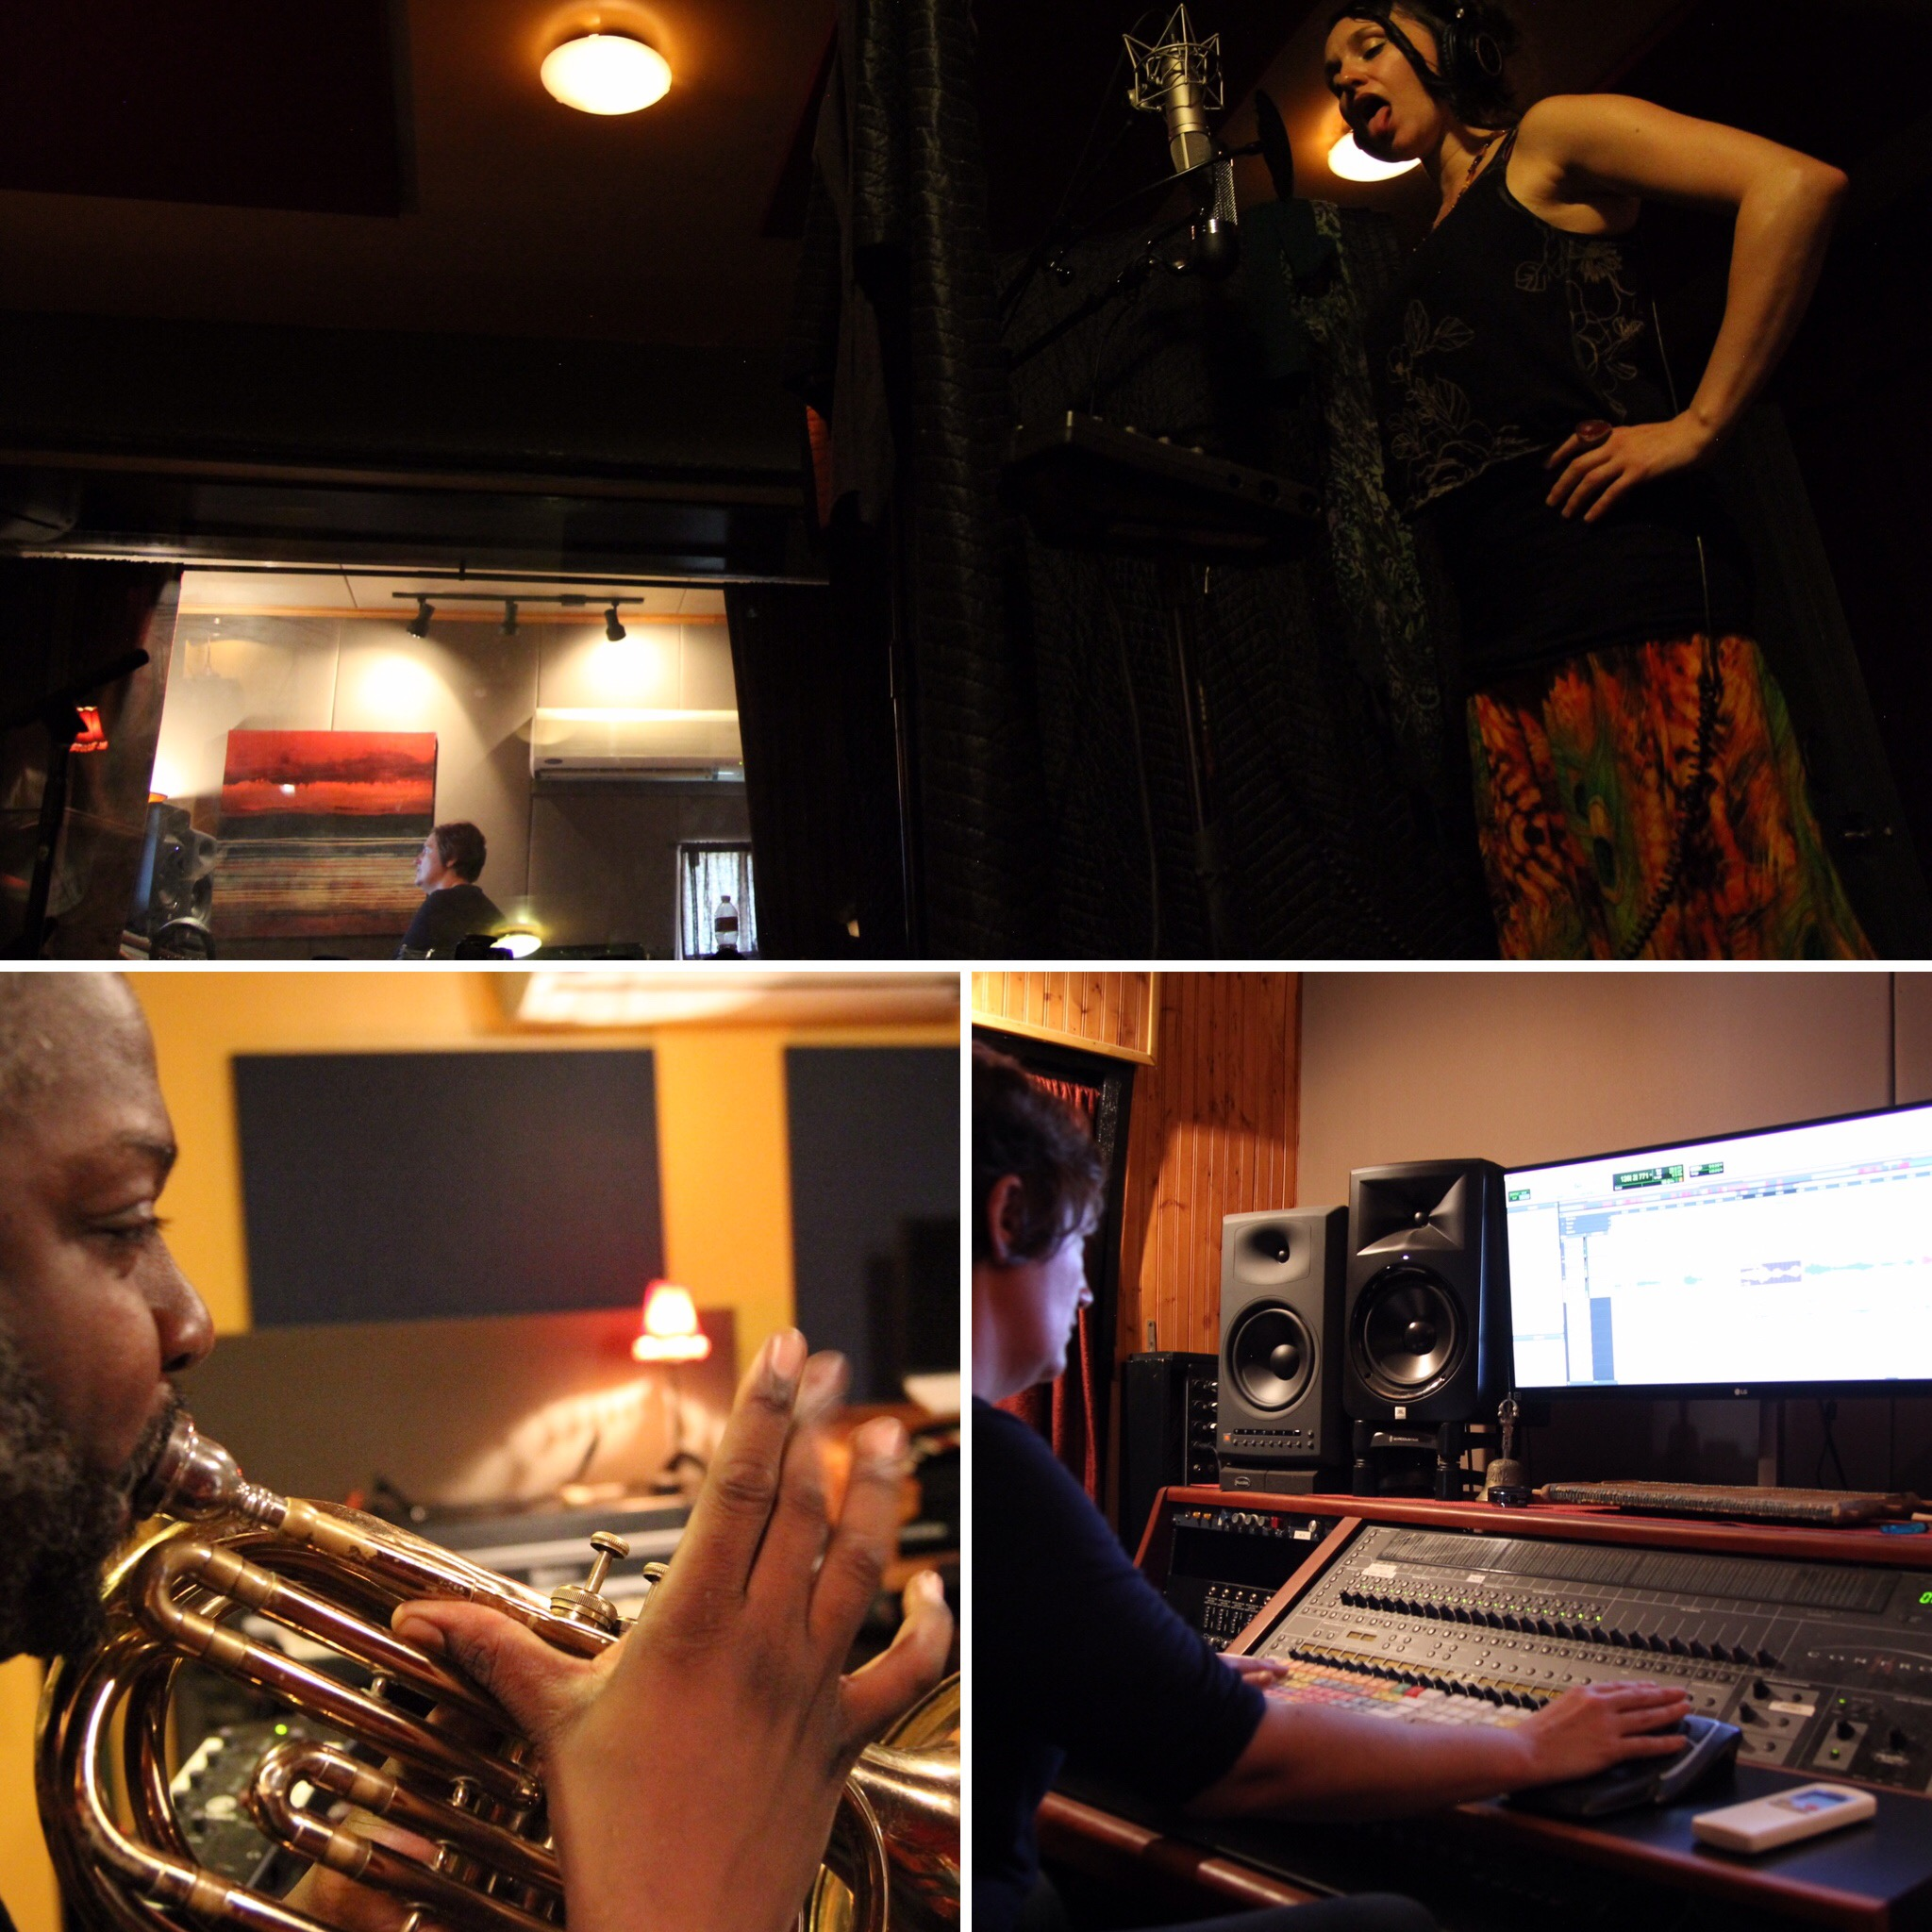 """Working with Lynne was extremely rewarding. - It's unusual and exhilarating to work with an accomplished woman in the studio.""photos: me warming up, Shaunte Palmer recording pocket trombone, Lynne controlling her board."